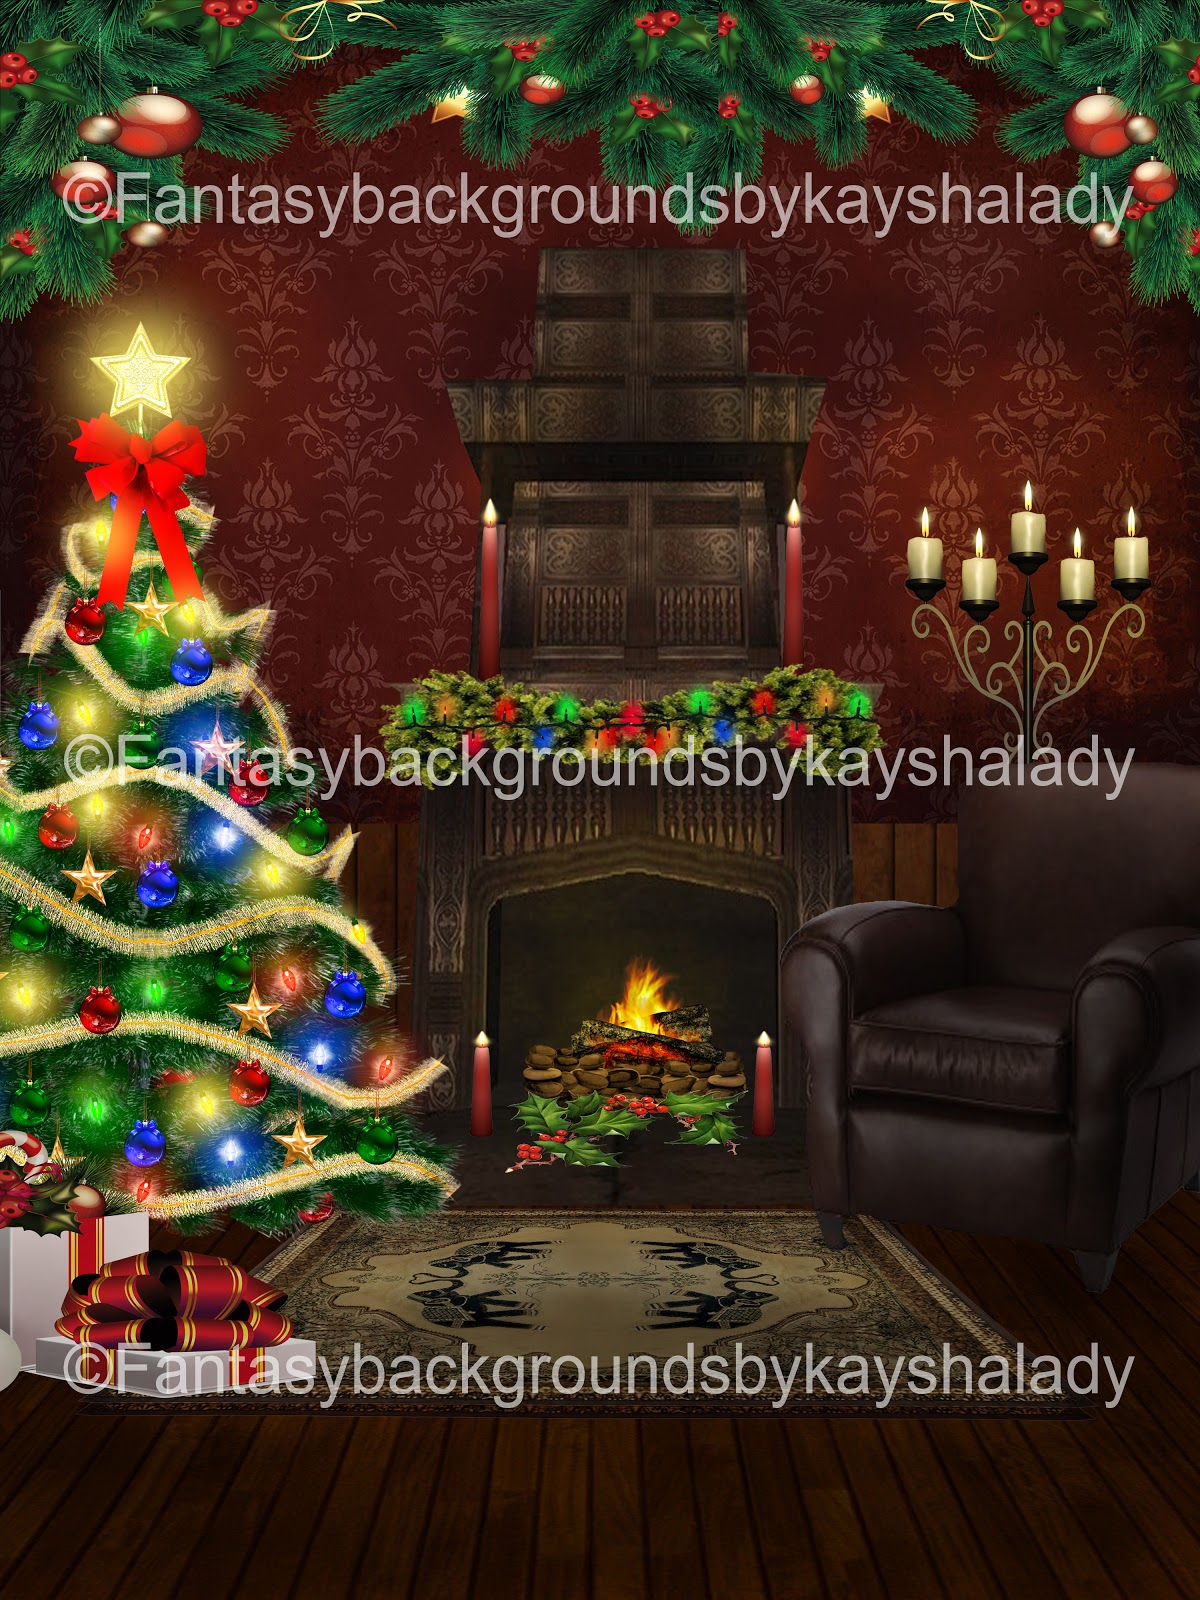 fantasybackgroundsbykayshalady: Christmas Fireplaces Fantasy ...